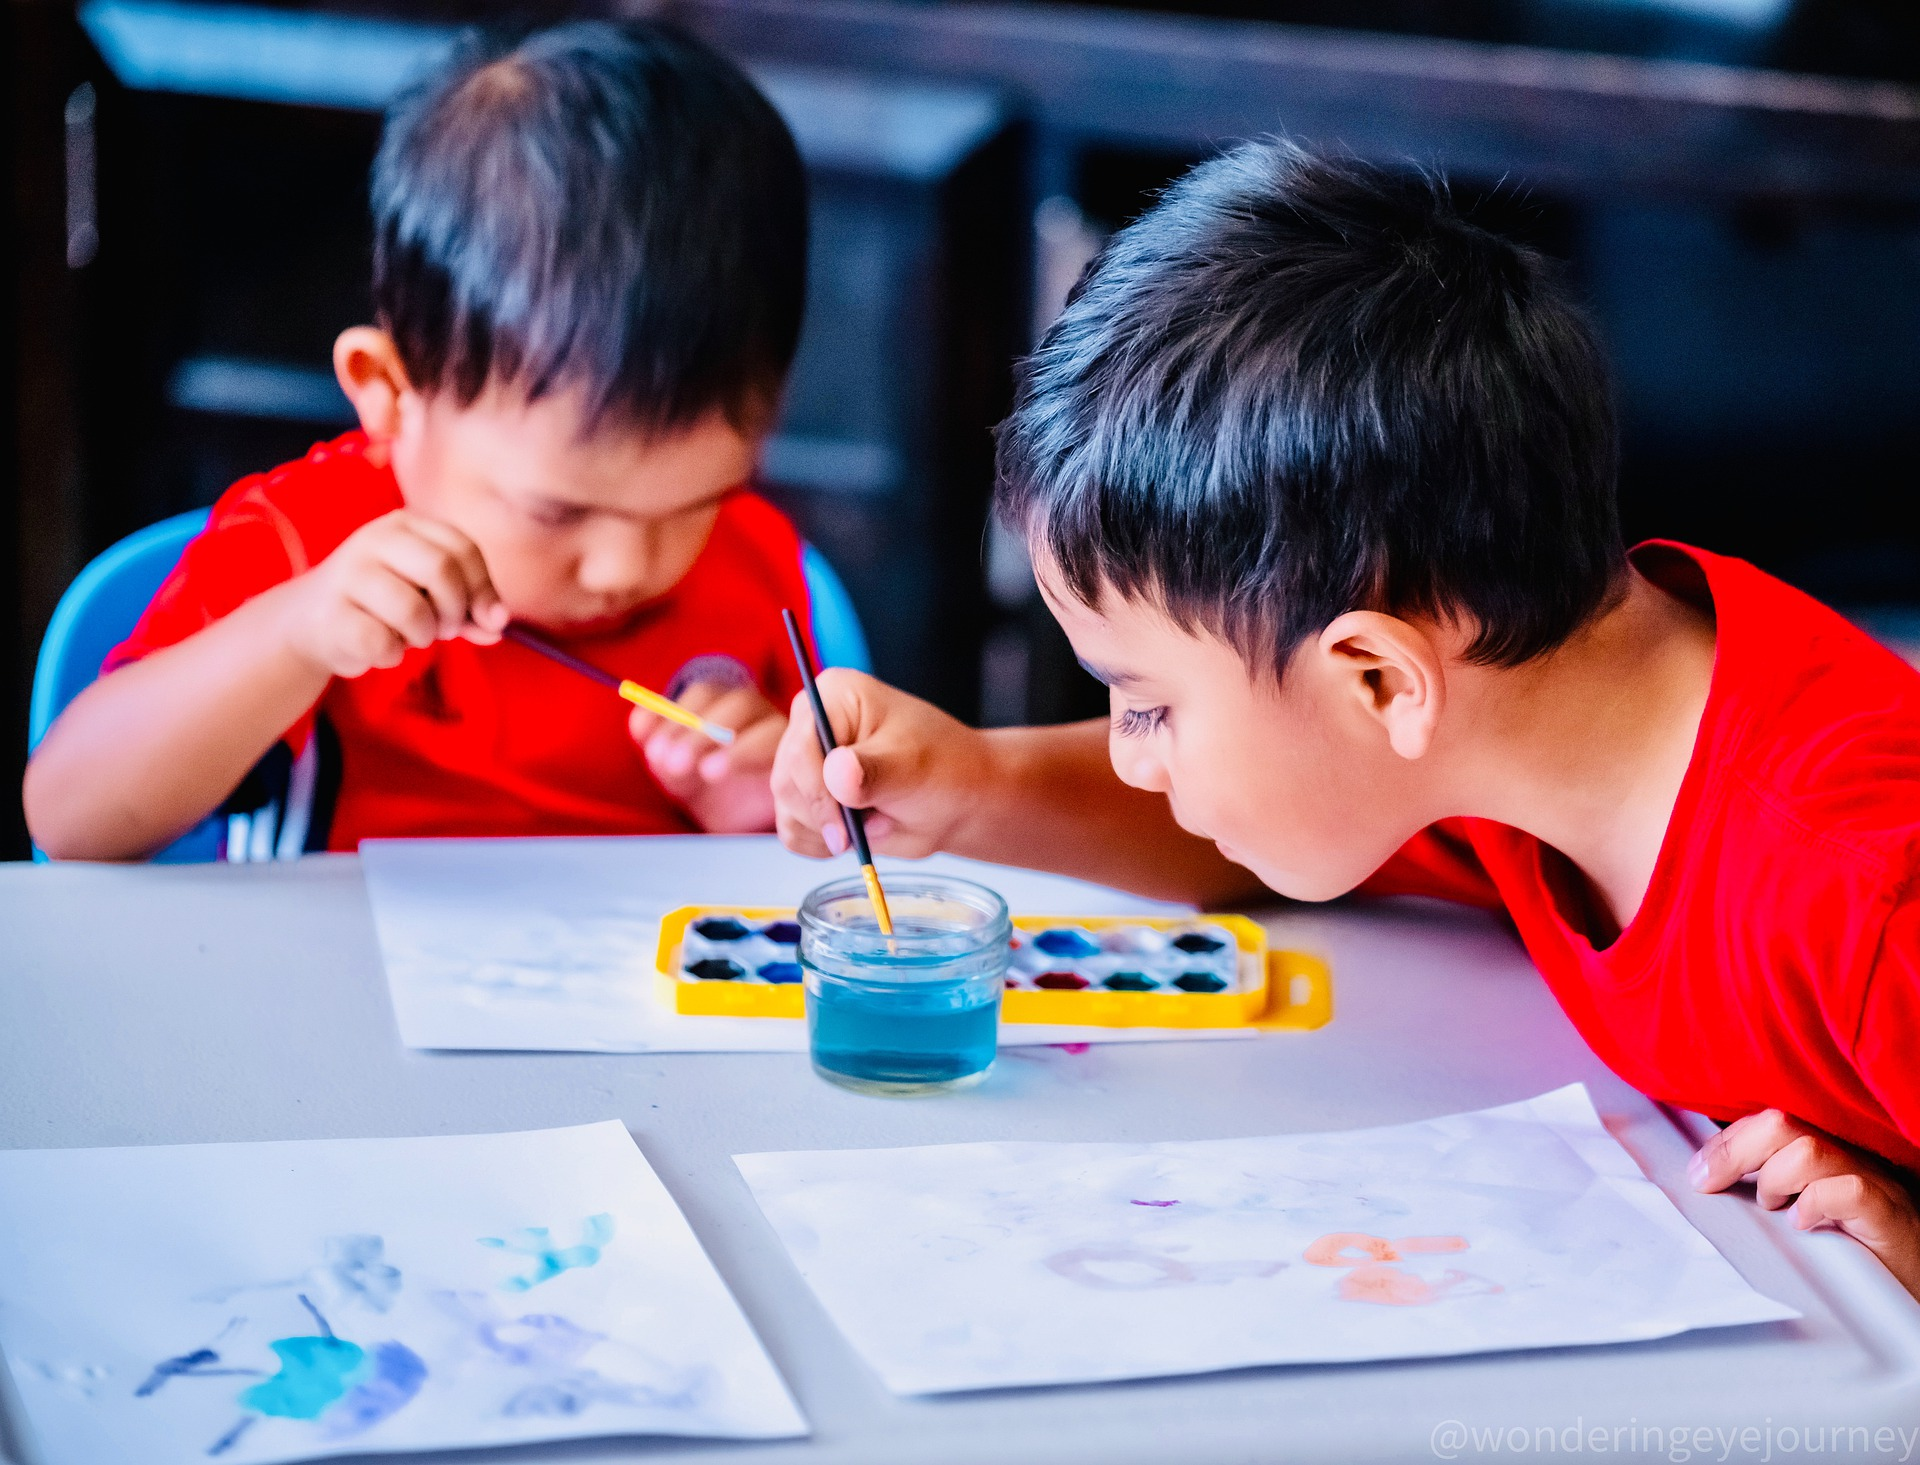 Two young students painting at a table